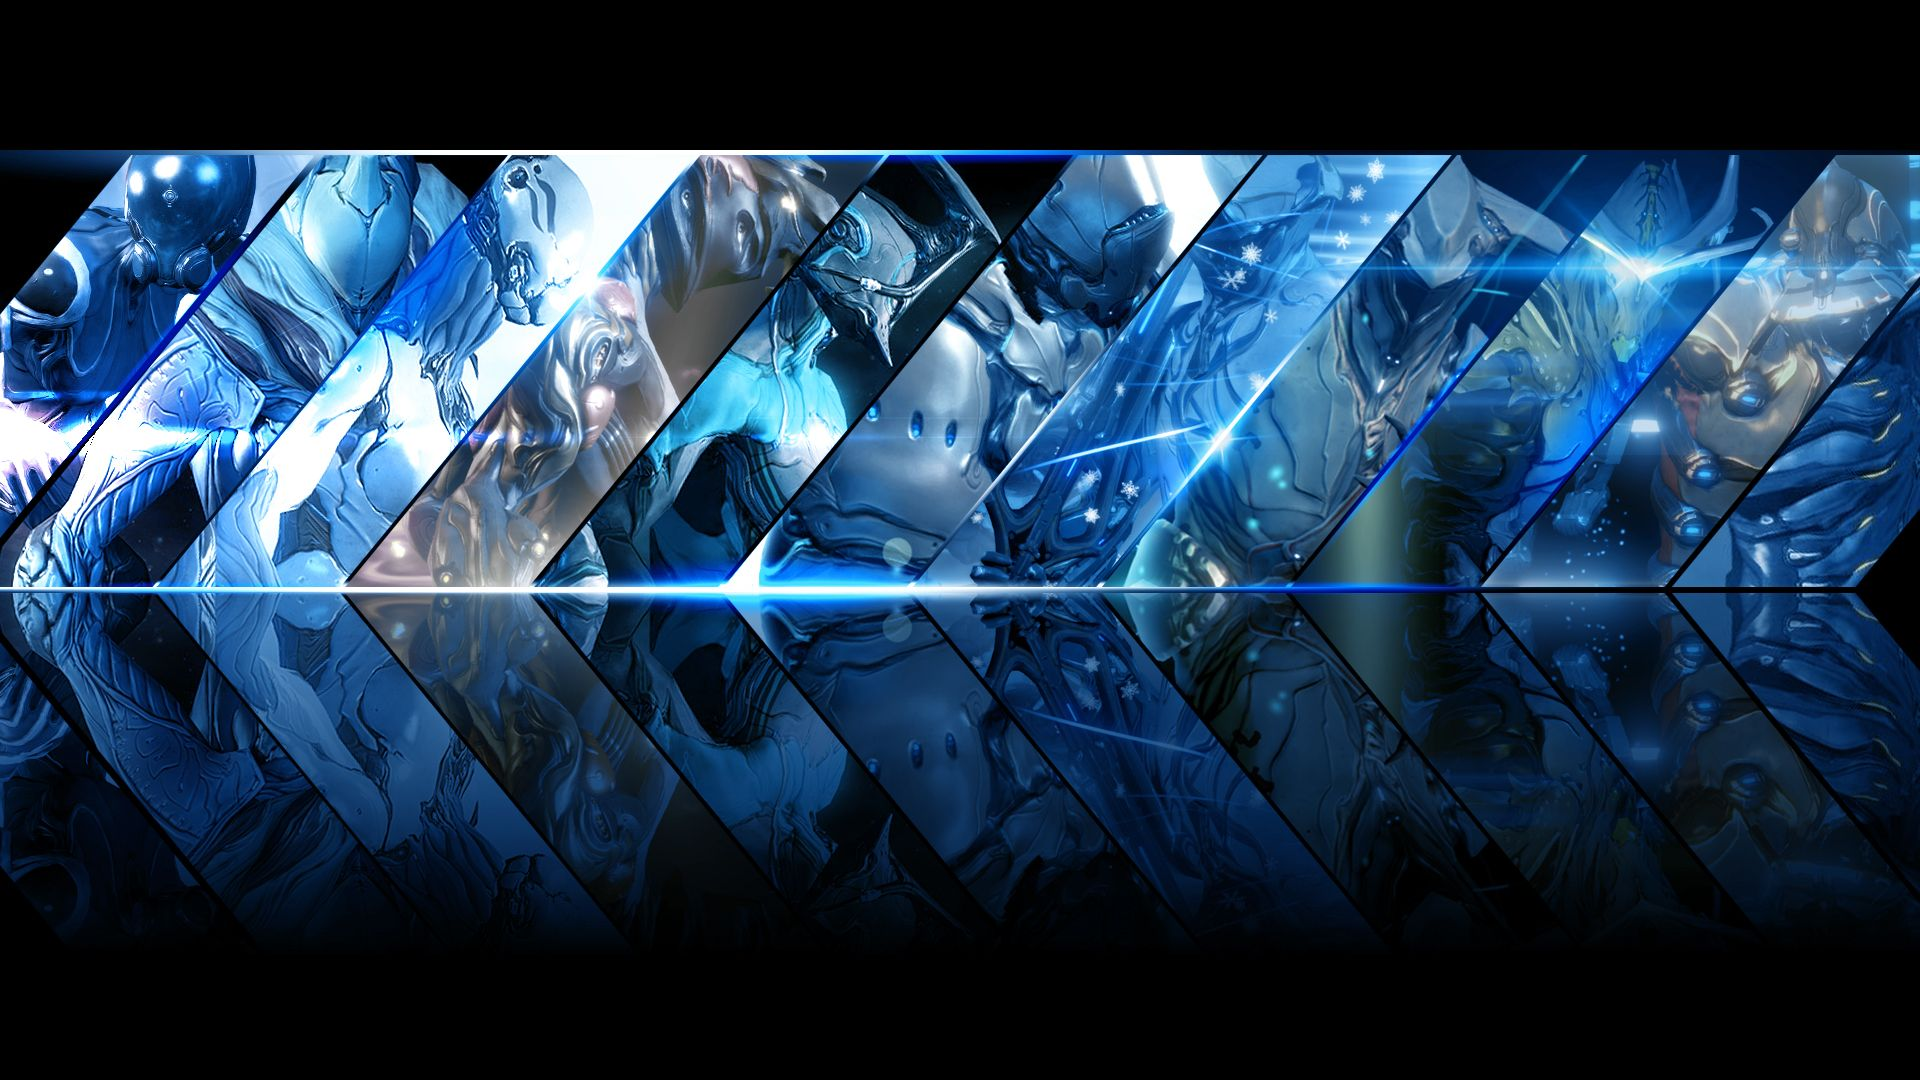 Warframe Wallpaper   Fan Art   Warframe Forums 1920x1080